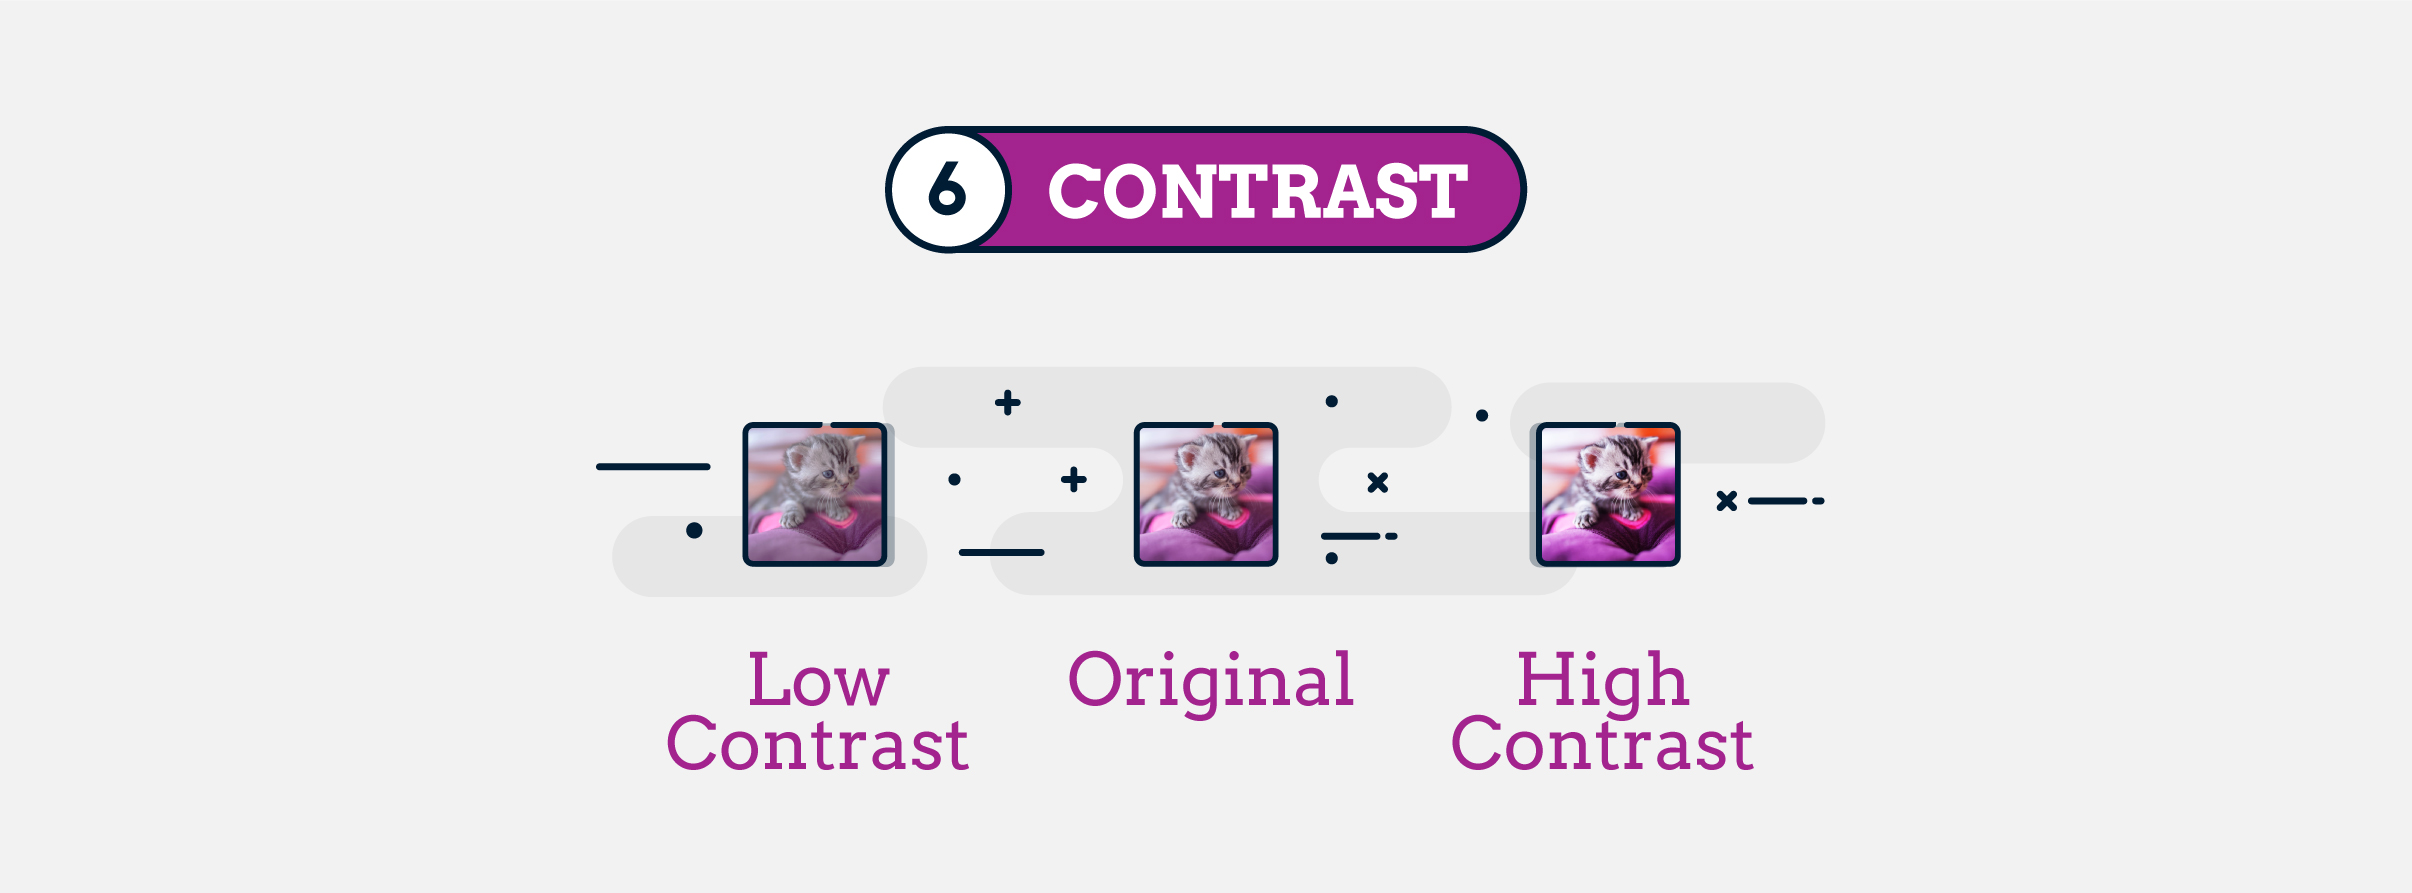 Design terms - contrast